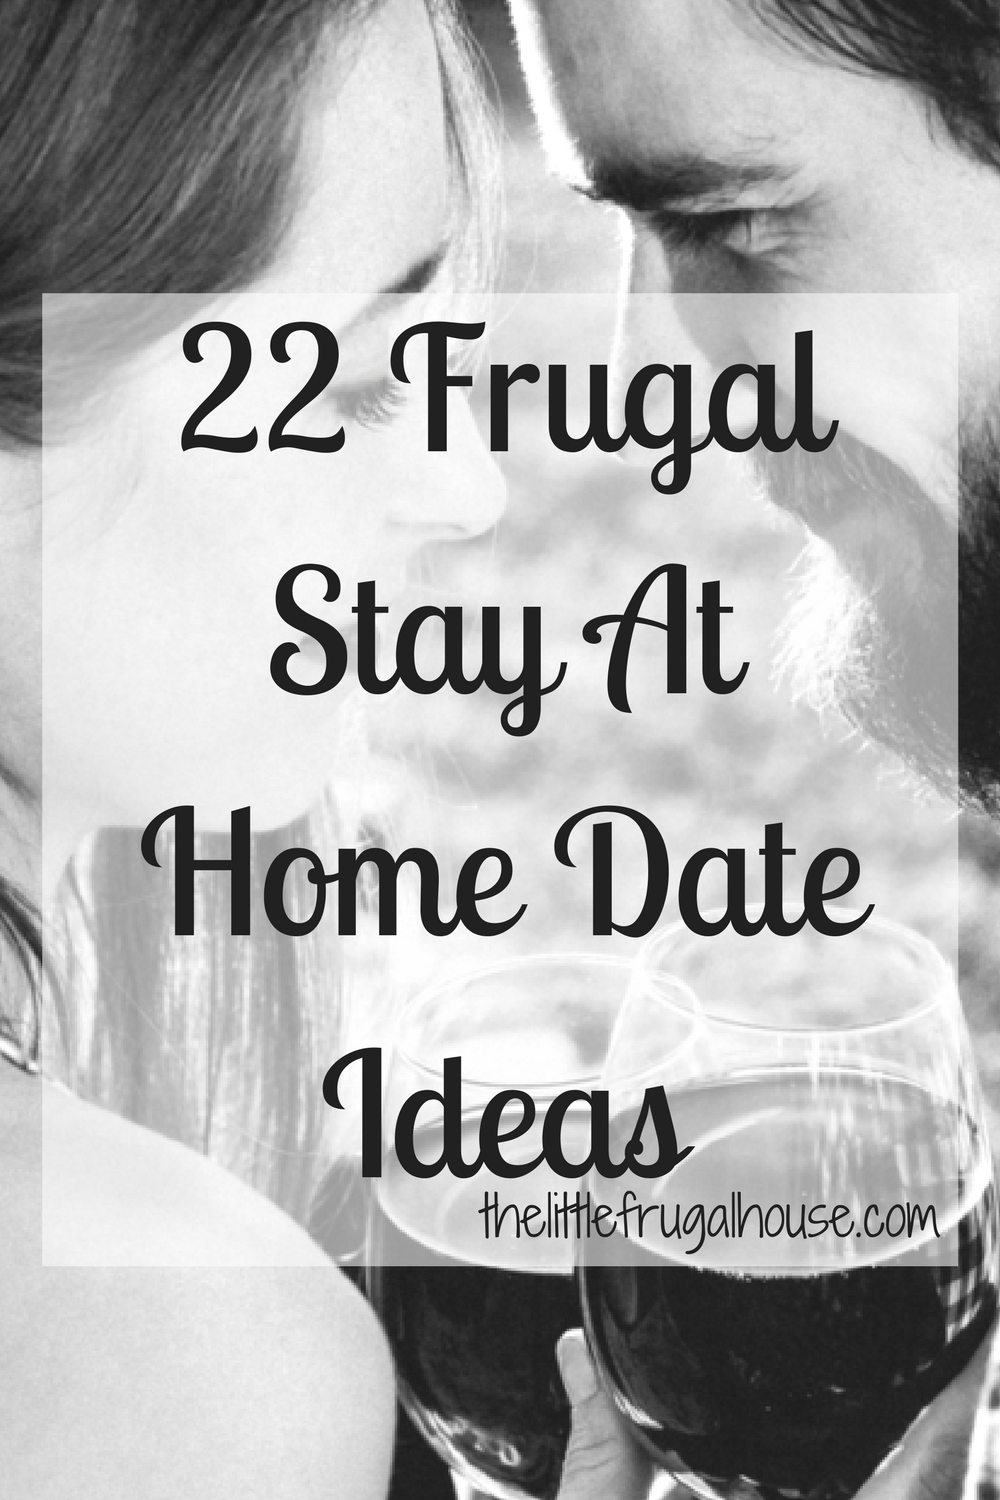 22 Frugal Stay At Home Date Ideas | Frugal, Debt and Personal finance